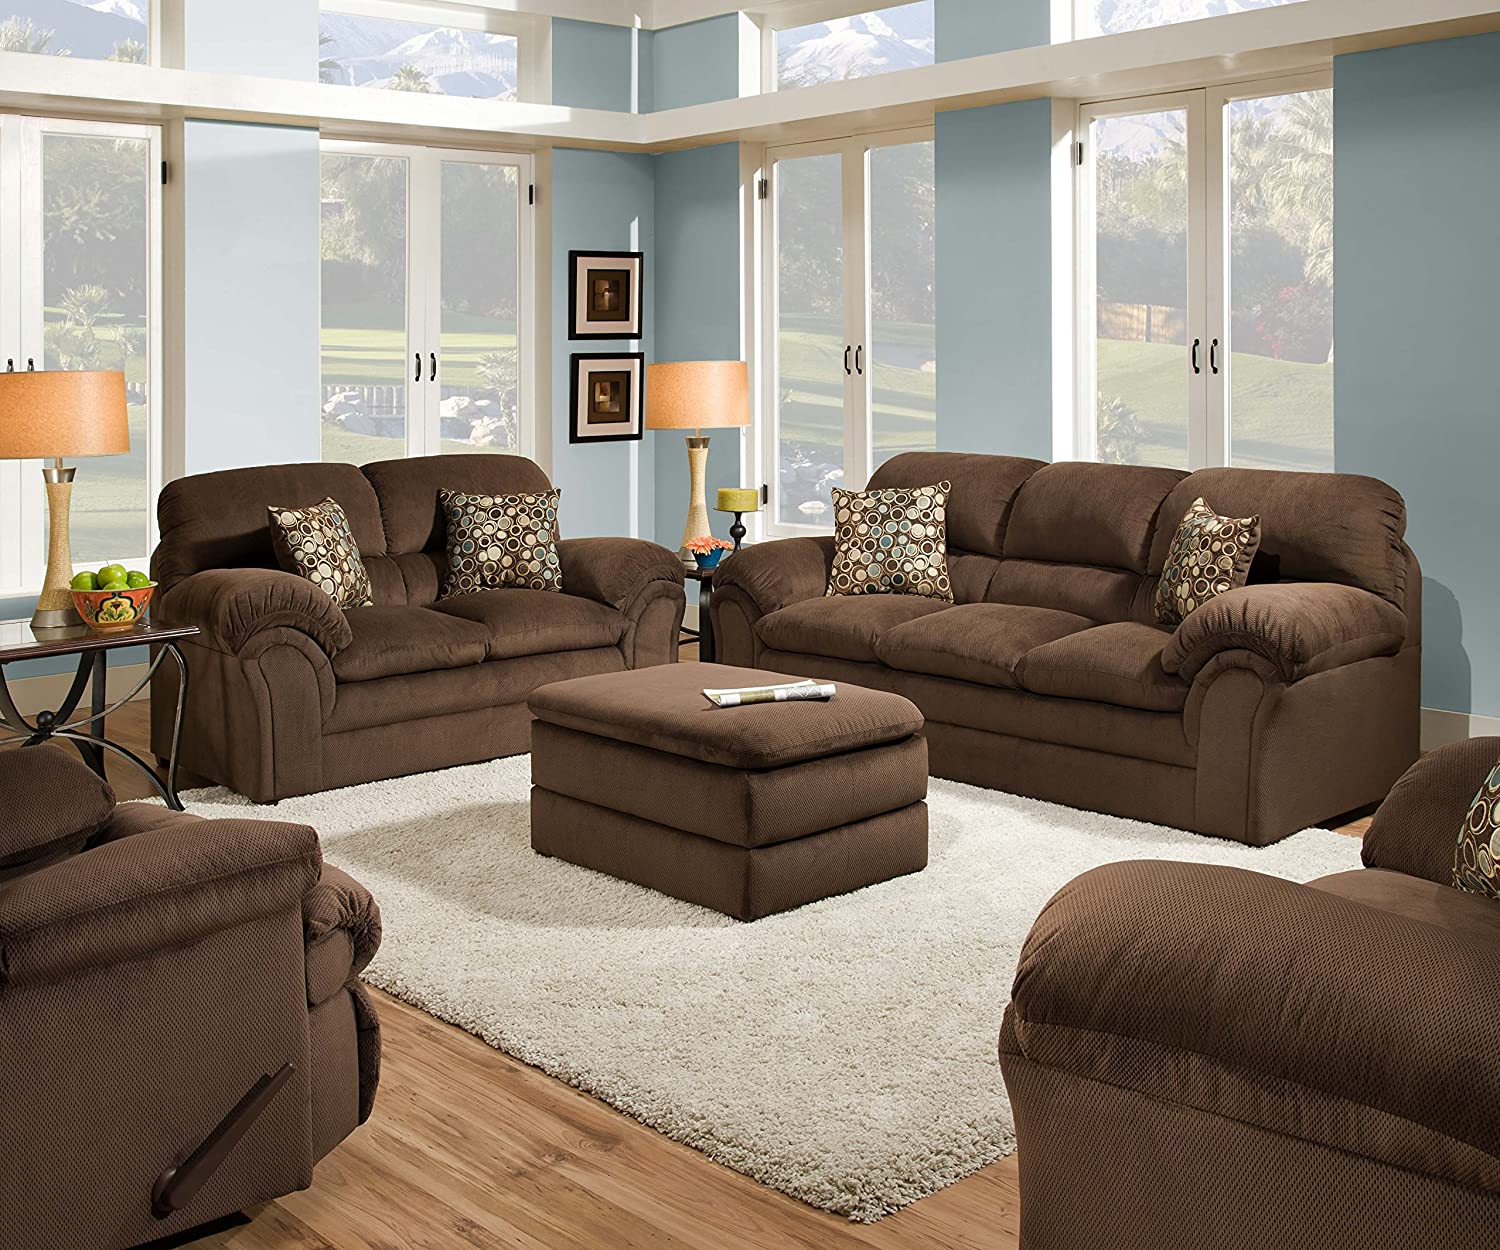 simmons loveseat. amazon.com: simmons upholstery 6150-02 harper cocoa loveseat: kitchen \u0026 dining loveseat a